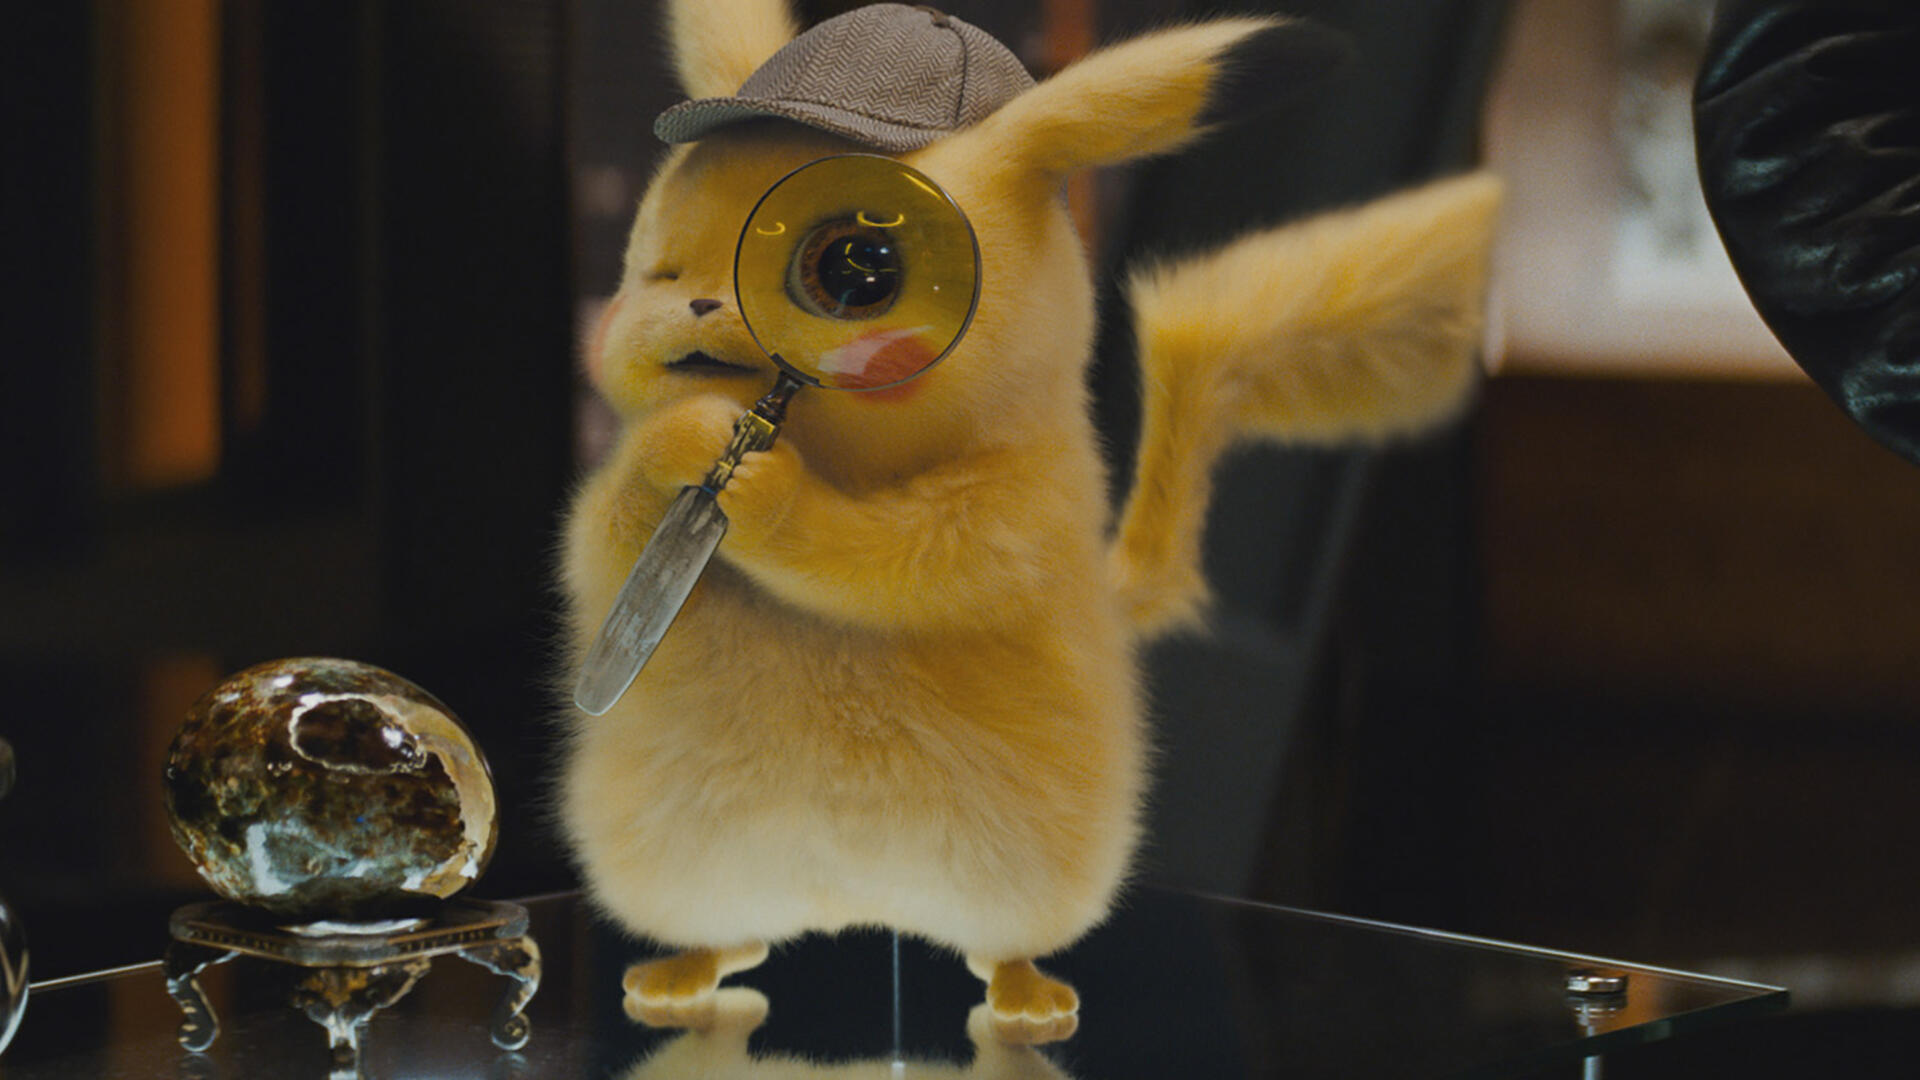 Detective Pikachu Looks Great, But Video Games Are Still Better Suited for the Small Screen